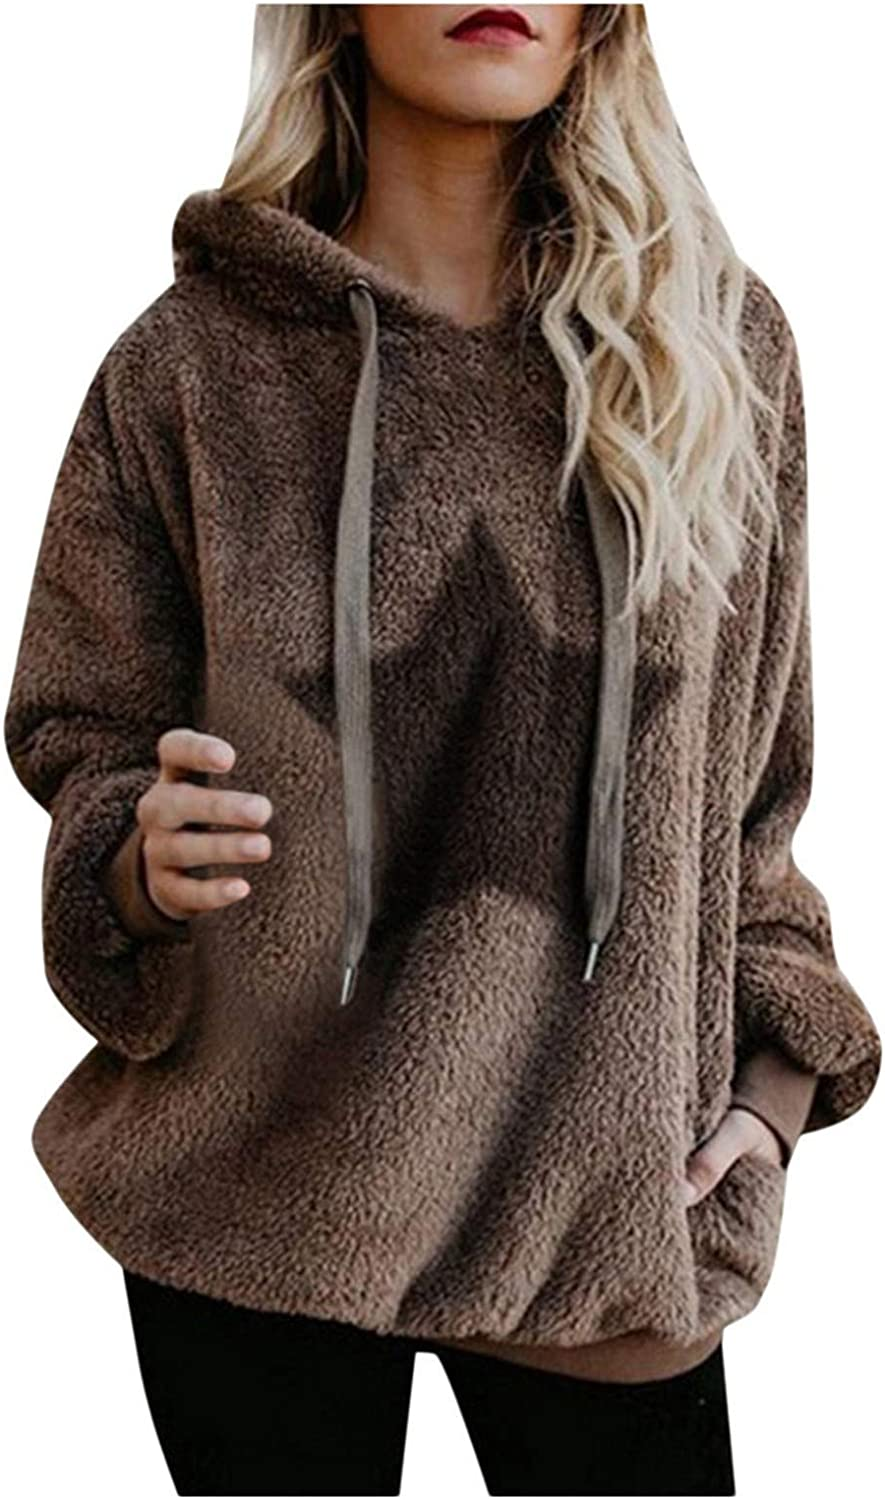 haoriuc Faux Fur Jackets for Women Dressy Shaggy Cropped Pullover Hoodie Plus Size Soft Fuzzy Sweaters Coat